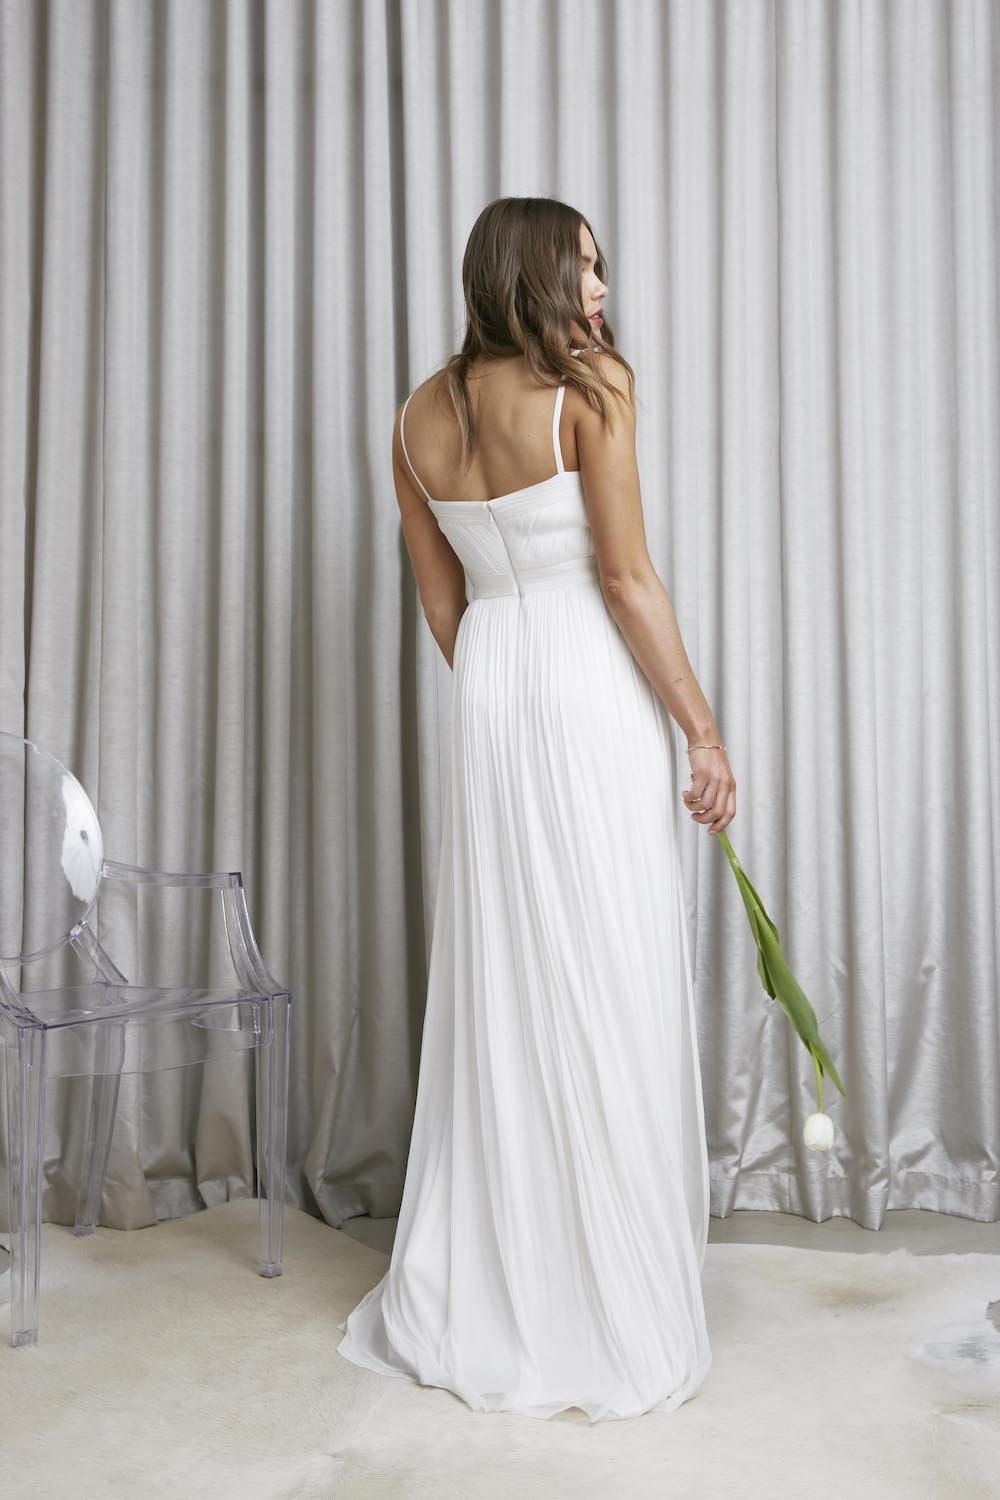 Fiona Claire Charm Bridal Dress featured on LOVE FIND CO.